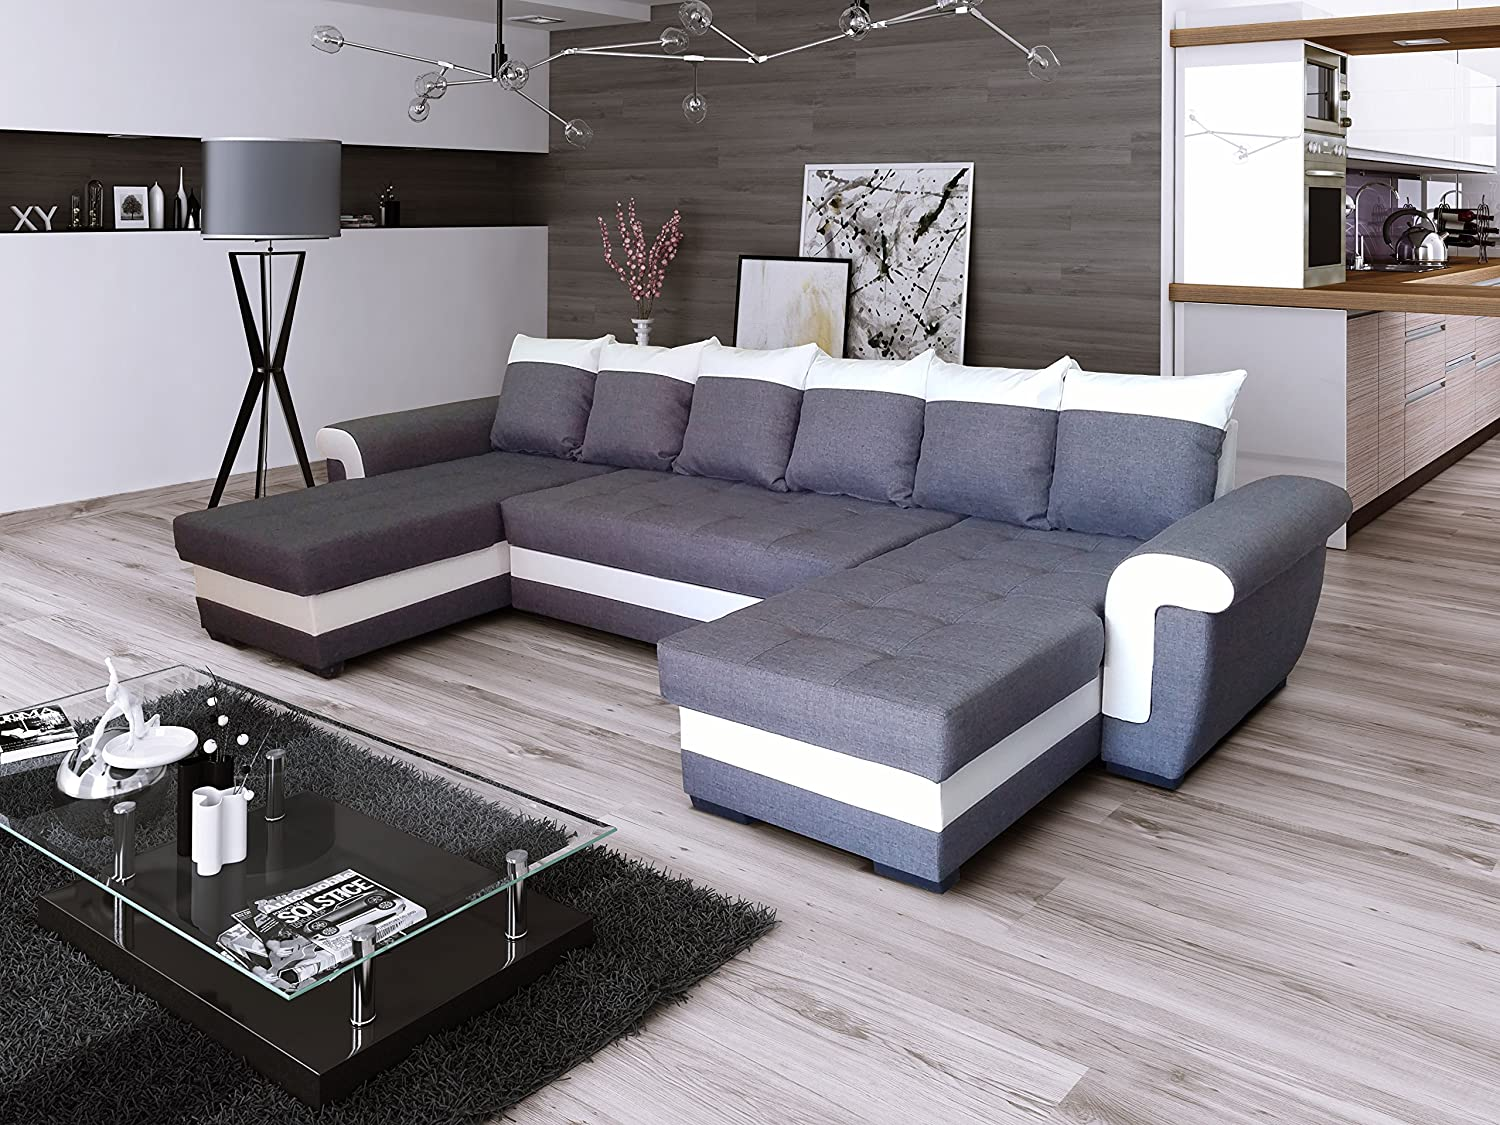 ecksofa latte u mit schlaffunktion eckcouch sofagarnitur modern couch g nstig online kaufen. Black Bedroom Furniture Sets. Home Design Ideas